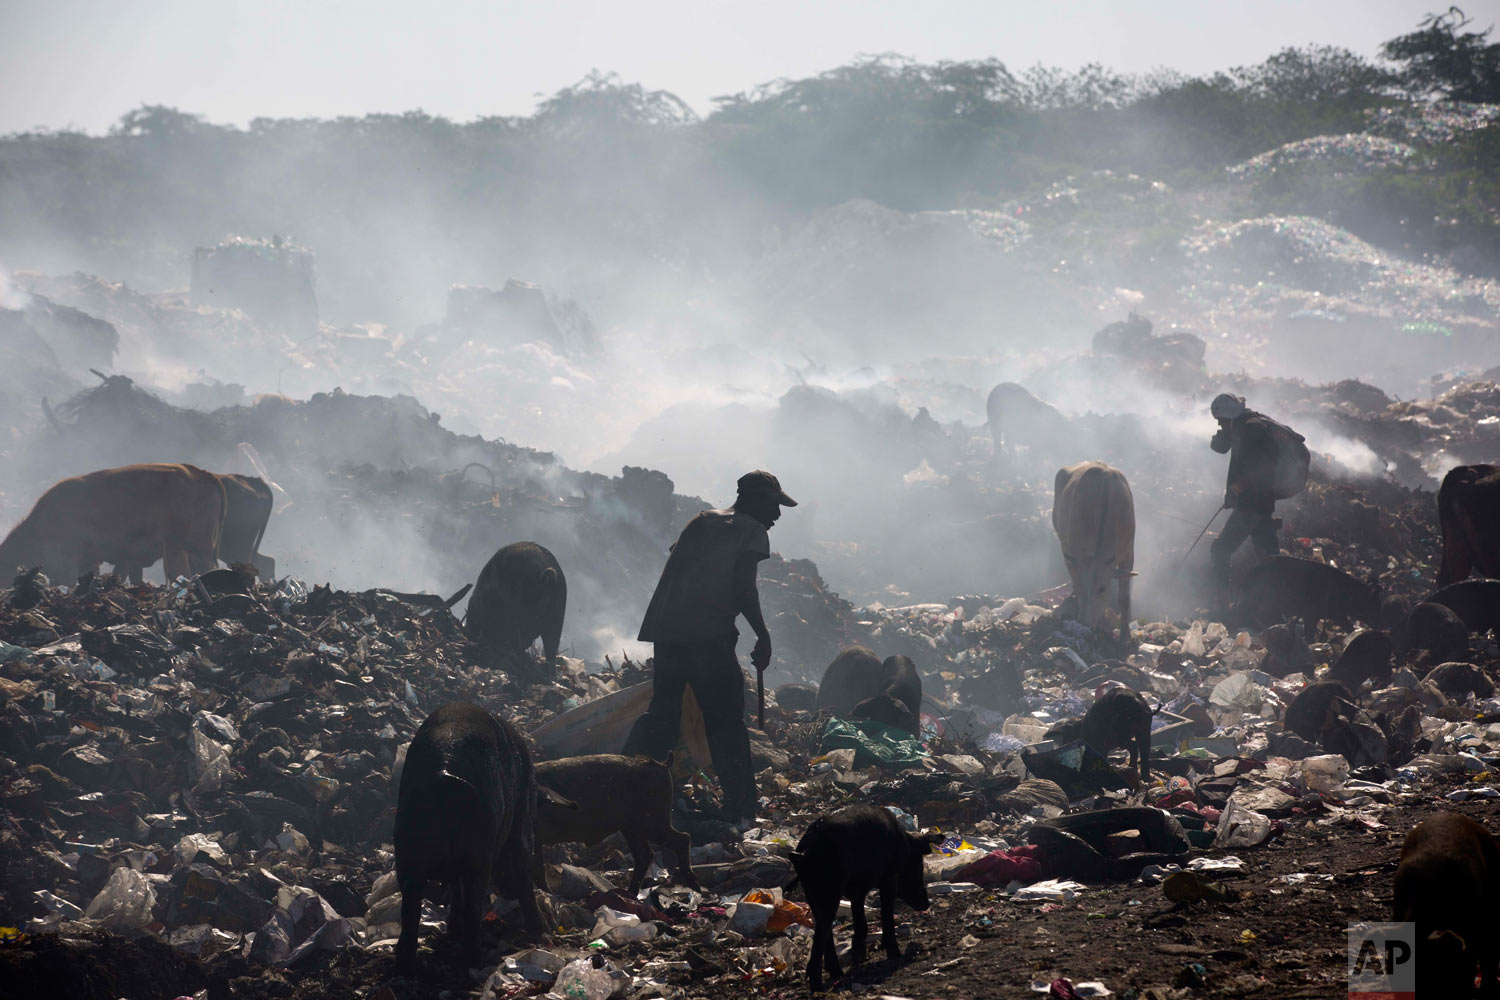 Pigs and cattle also rummage the landfill. Aug. 24, 2018. (AP Photo/Dieu Nalio Chery)